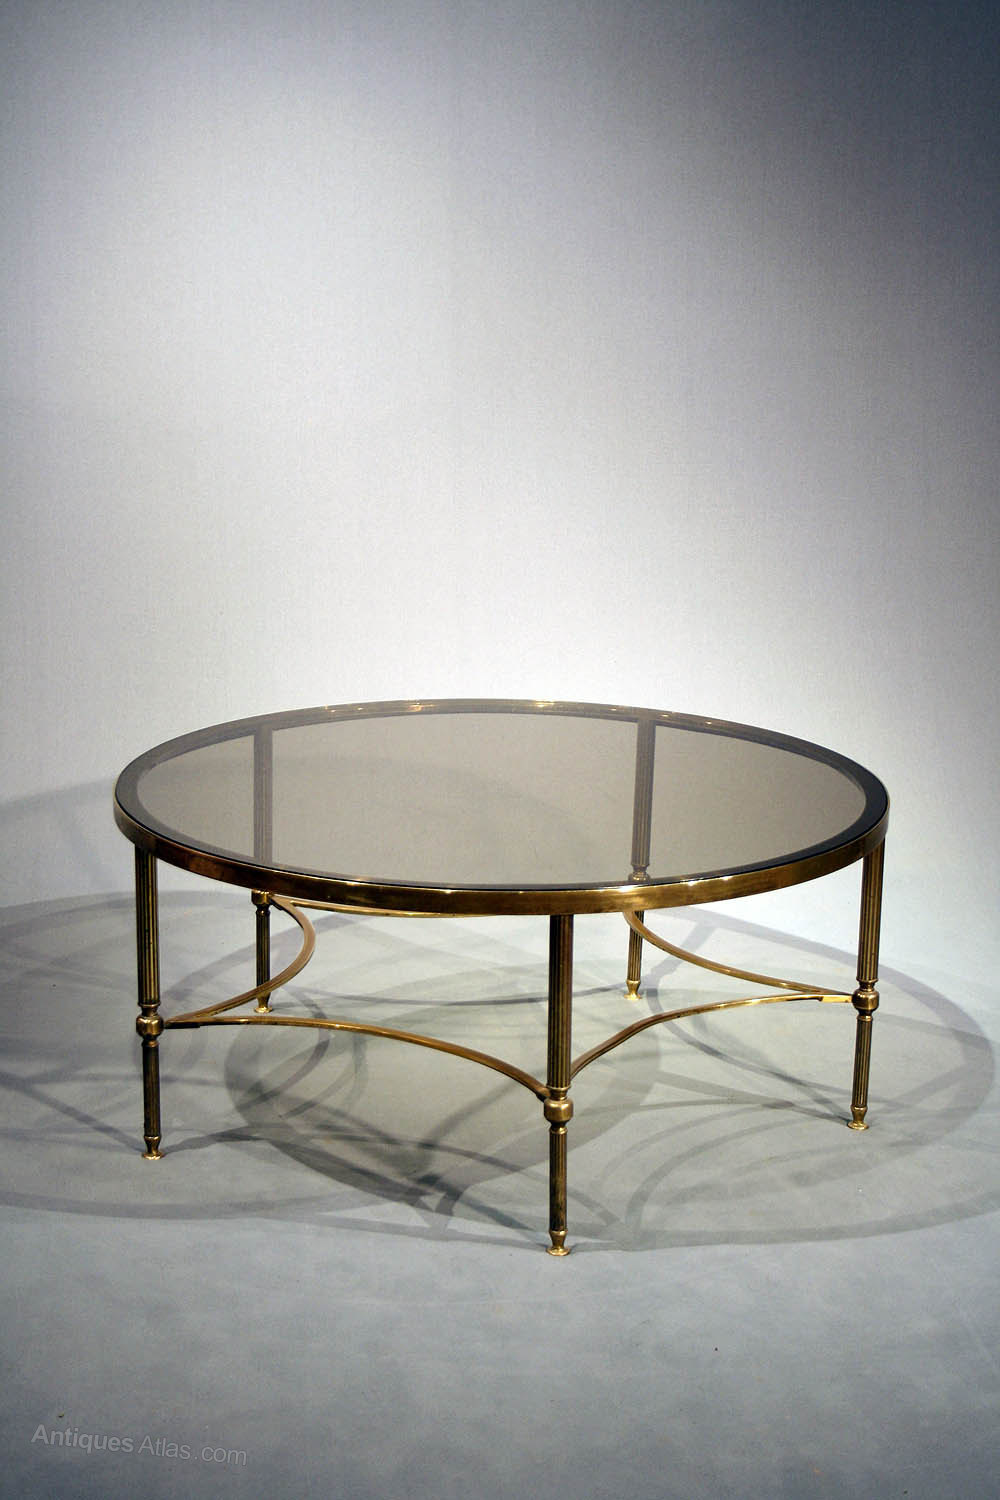 - Antiques Atlas - Large Brass Round Coffee Table